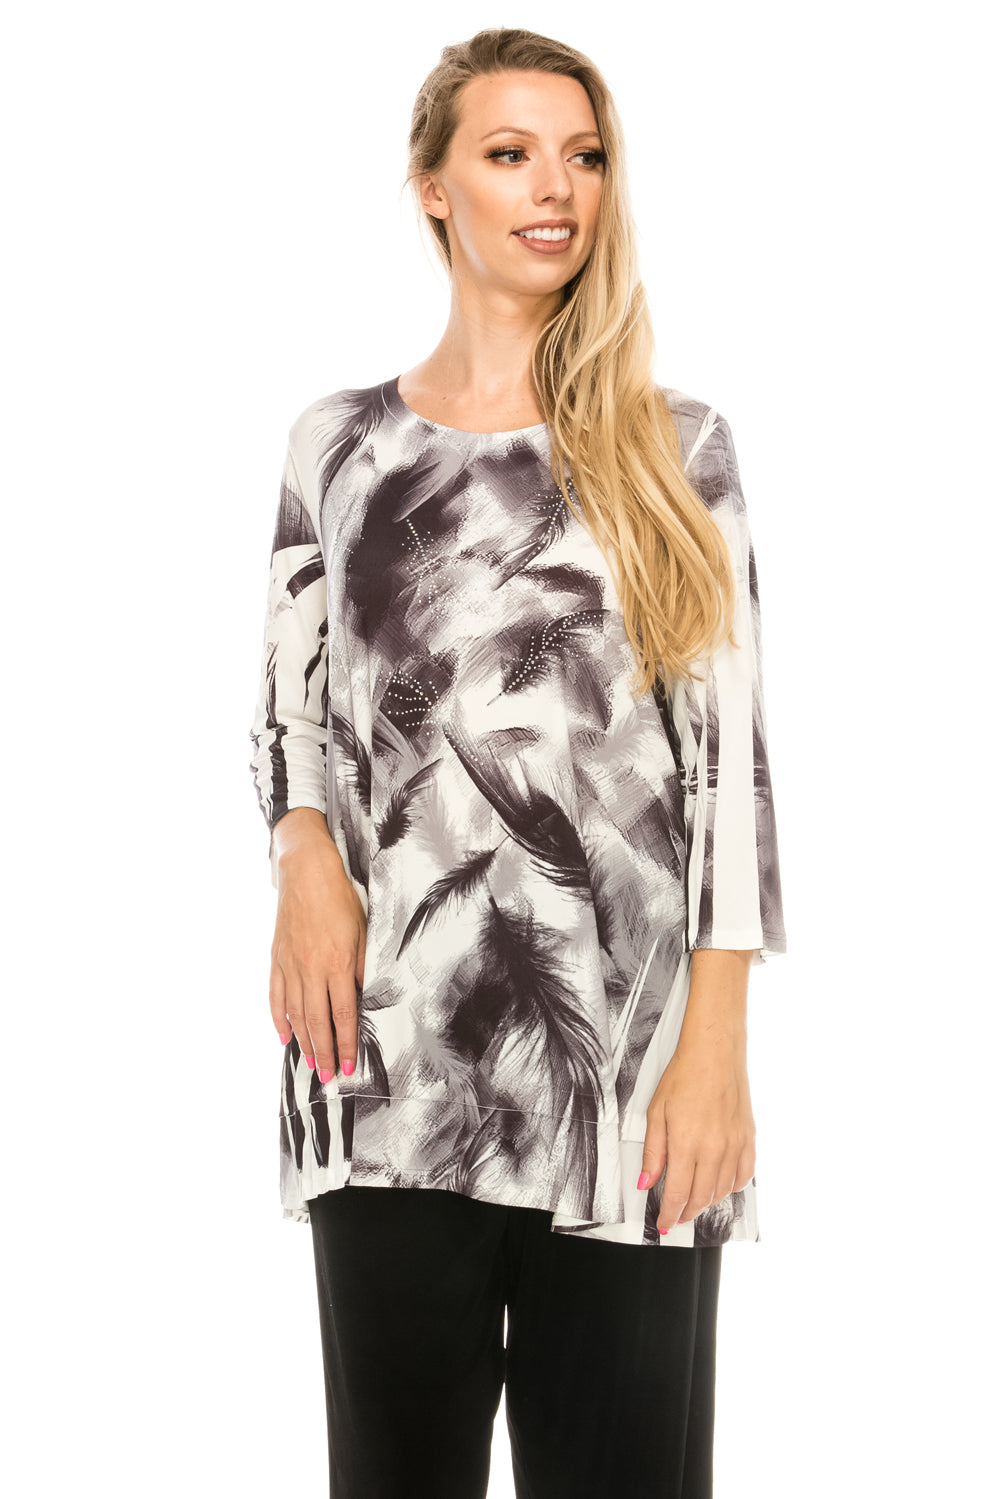 Jostar Women's Slub HIT Bottom Layered Top 3/4 Sleeve Sublimation Rhinestone, 326HT-QU-R-U177 - Jostar Online